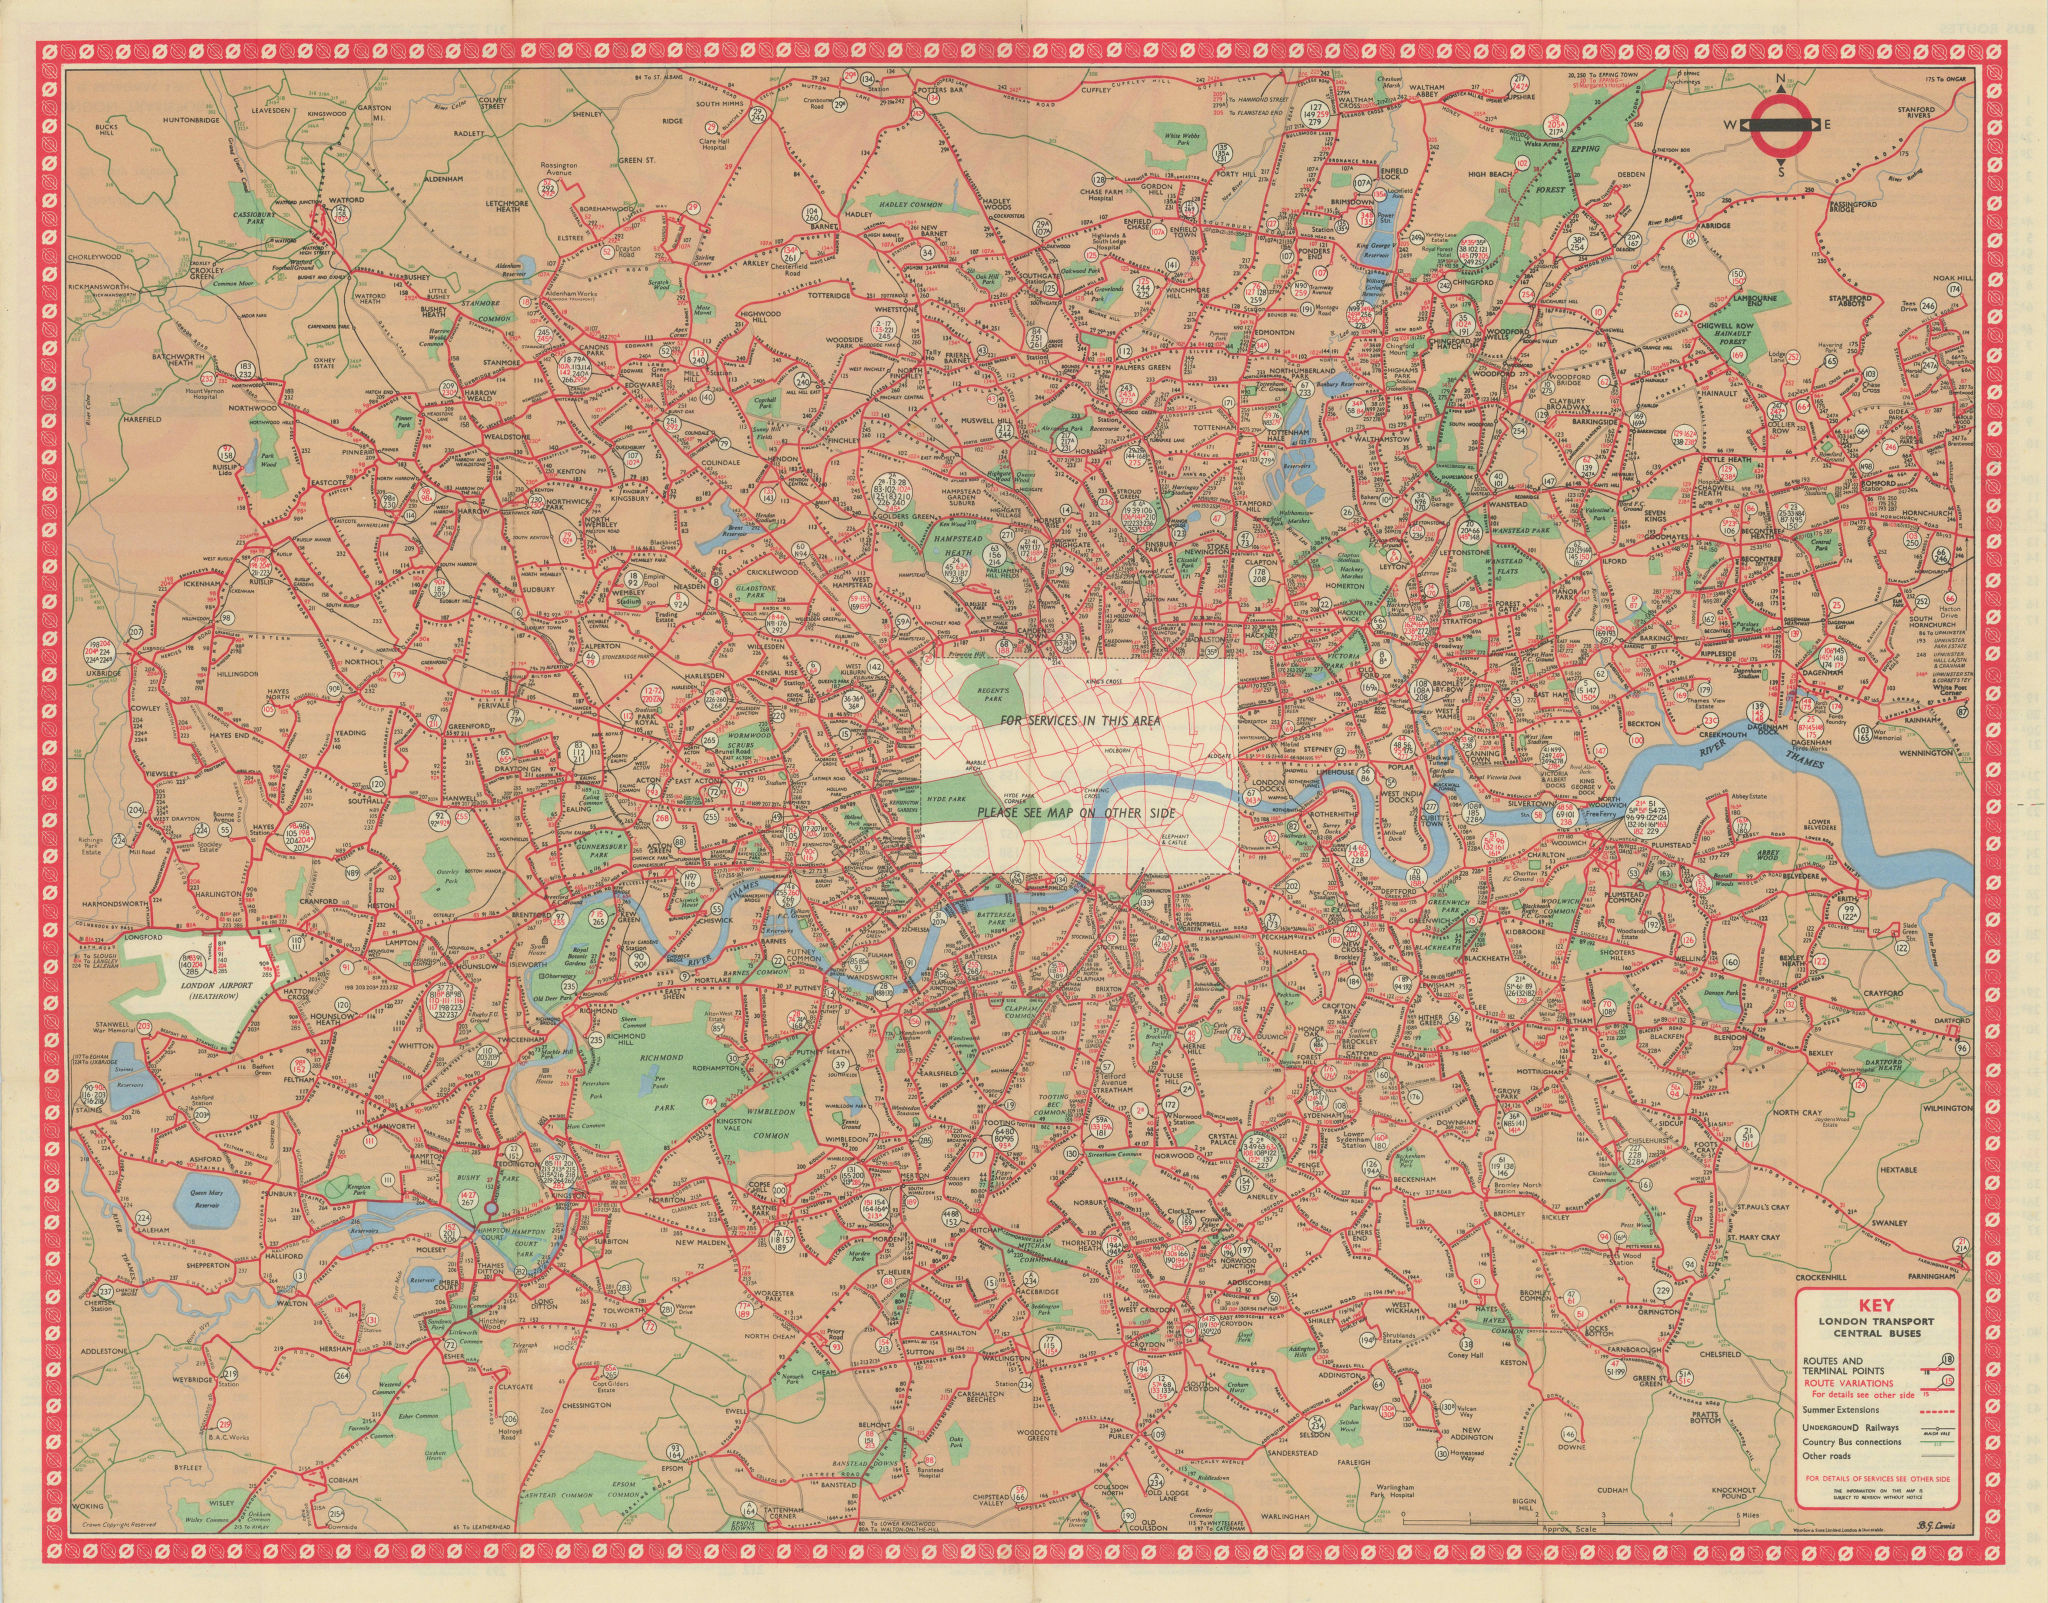 London Transport Central Buses map and list of routes. LEWIS #3 1964 old